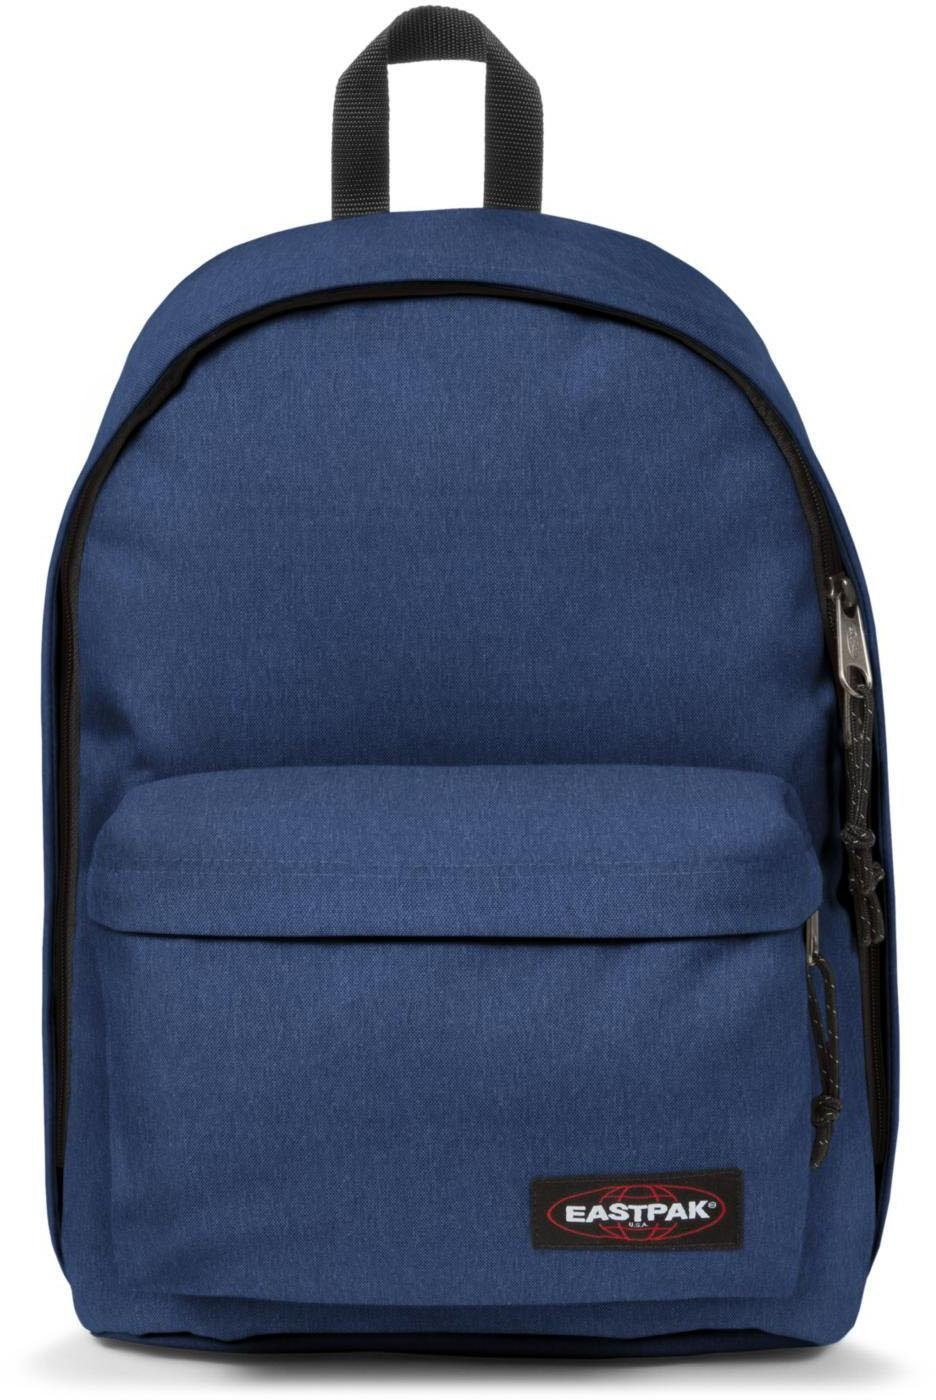 Eastpak Rucksack mit Laptopfach, »OUT OF OFFICE, crafty blue«